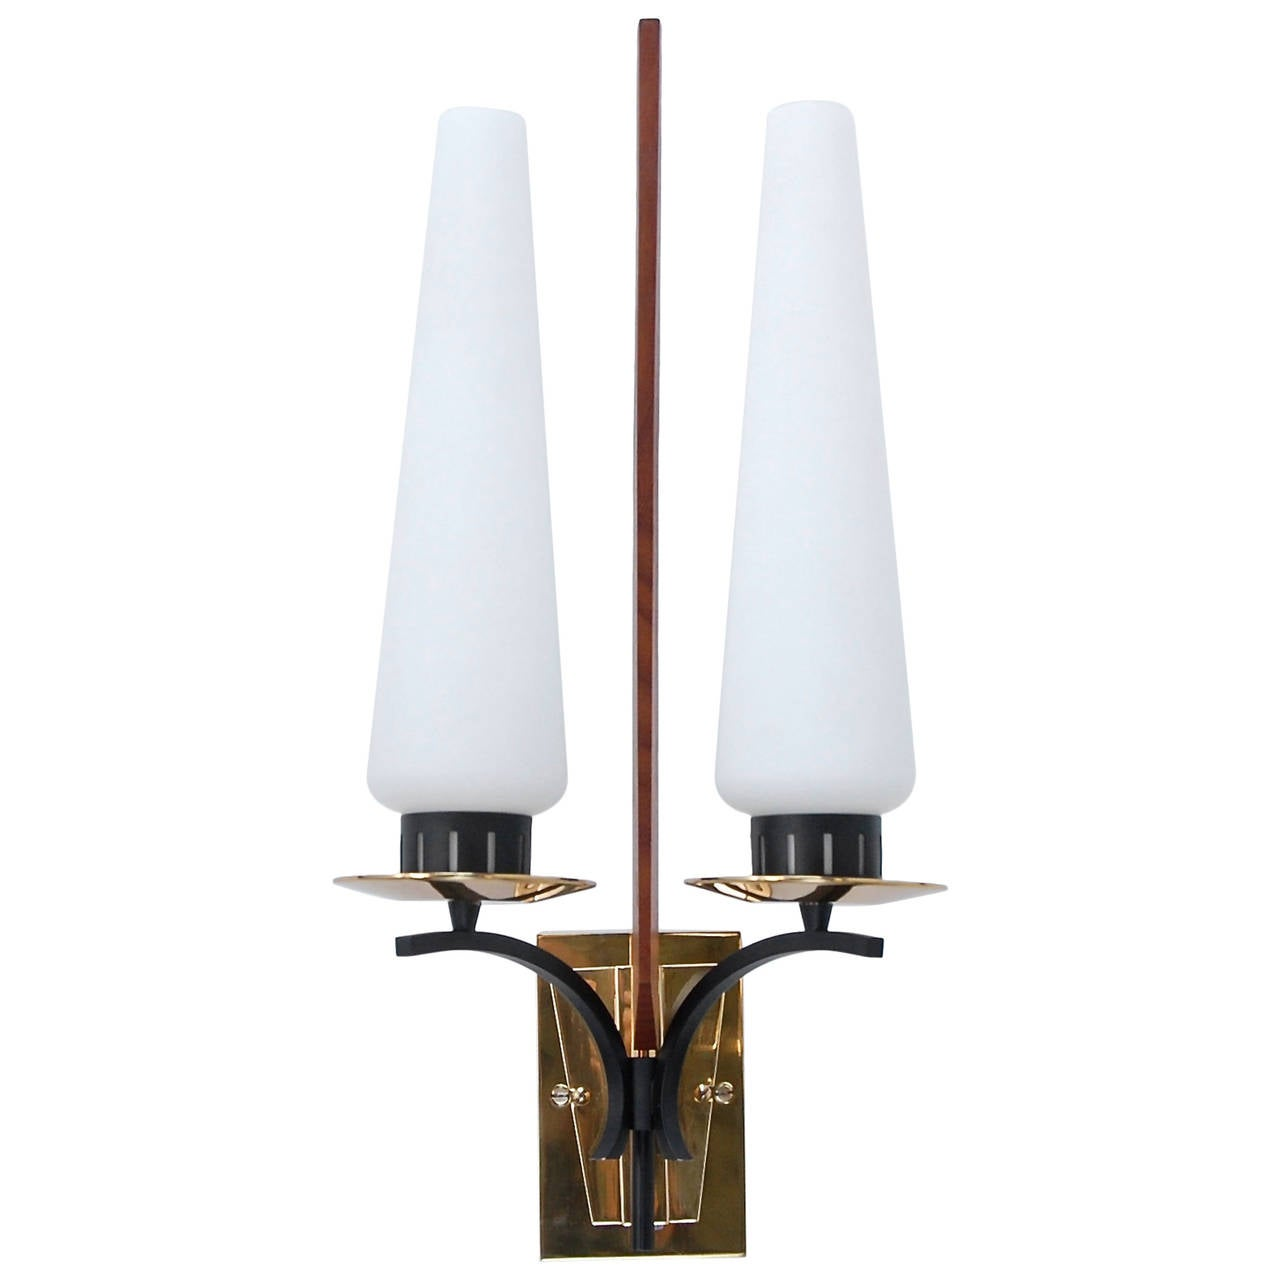 Modern Wall Sconces Italian : Large Italian Mid-Century Sconce For Sale at 1stdibs